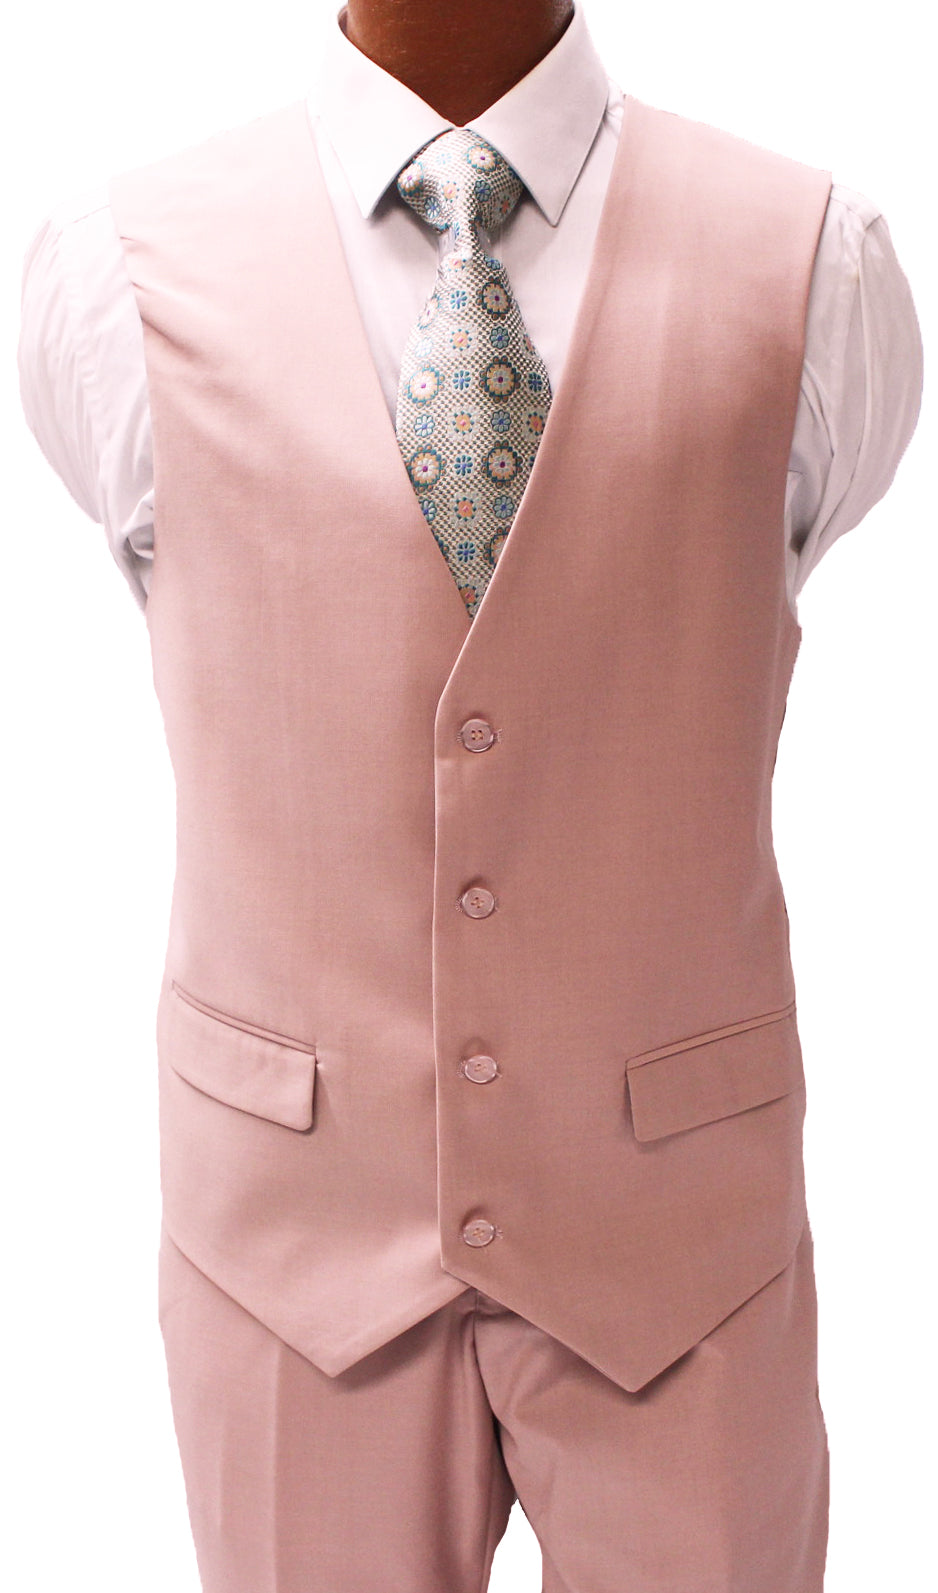 Stacy Adams Bud Light Pink Vested Modern Fit Suit